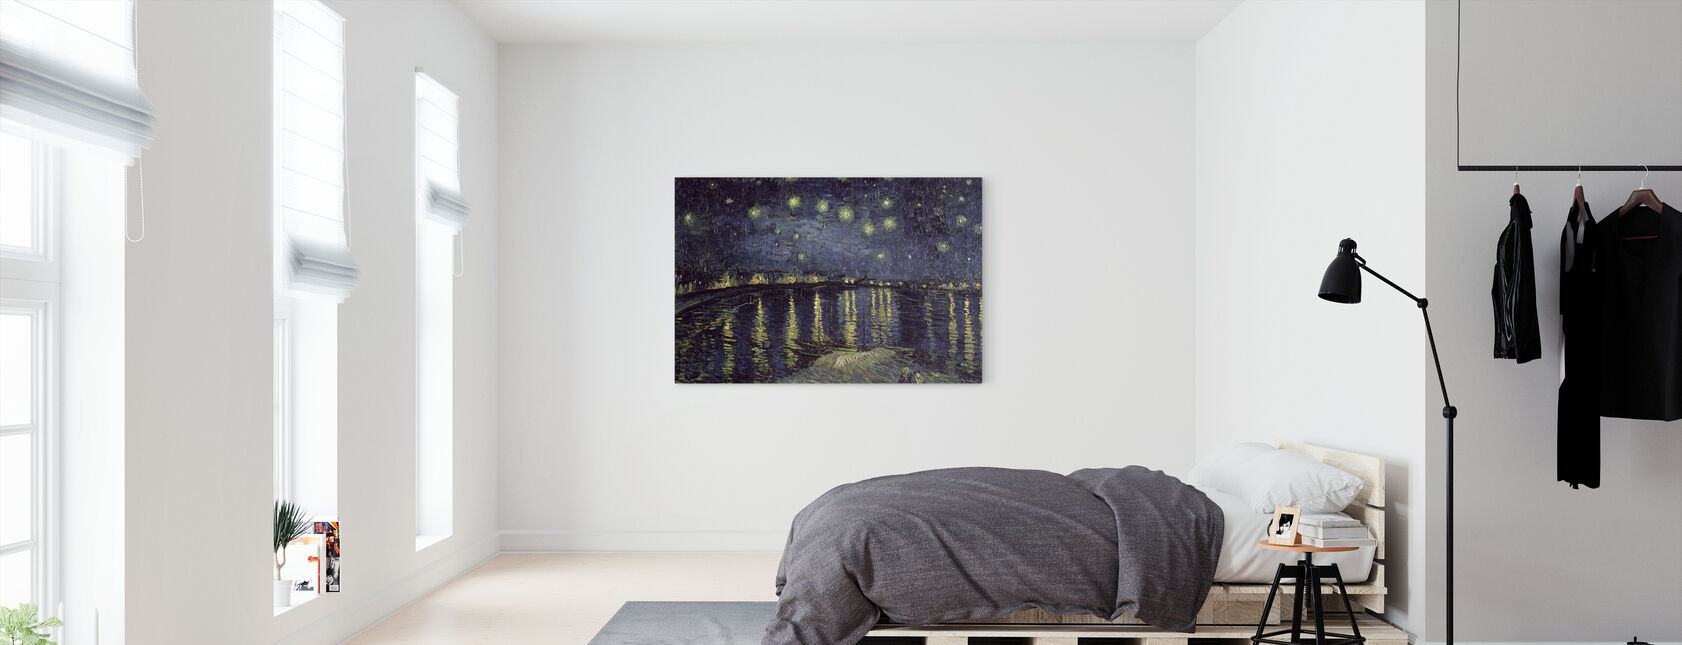 Starry Night - Vincent van Gogh - Canvas print - Bedroom